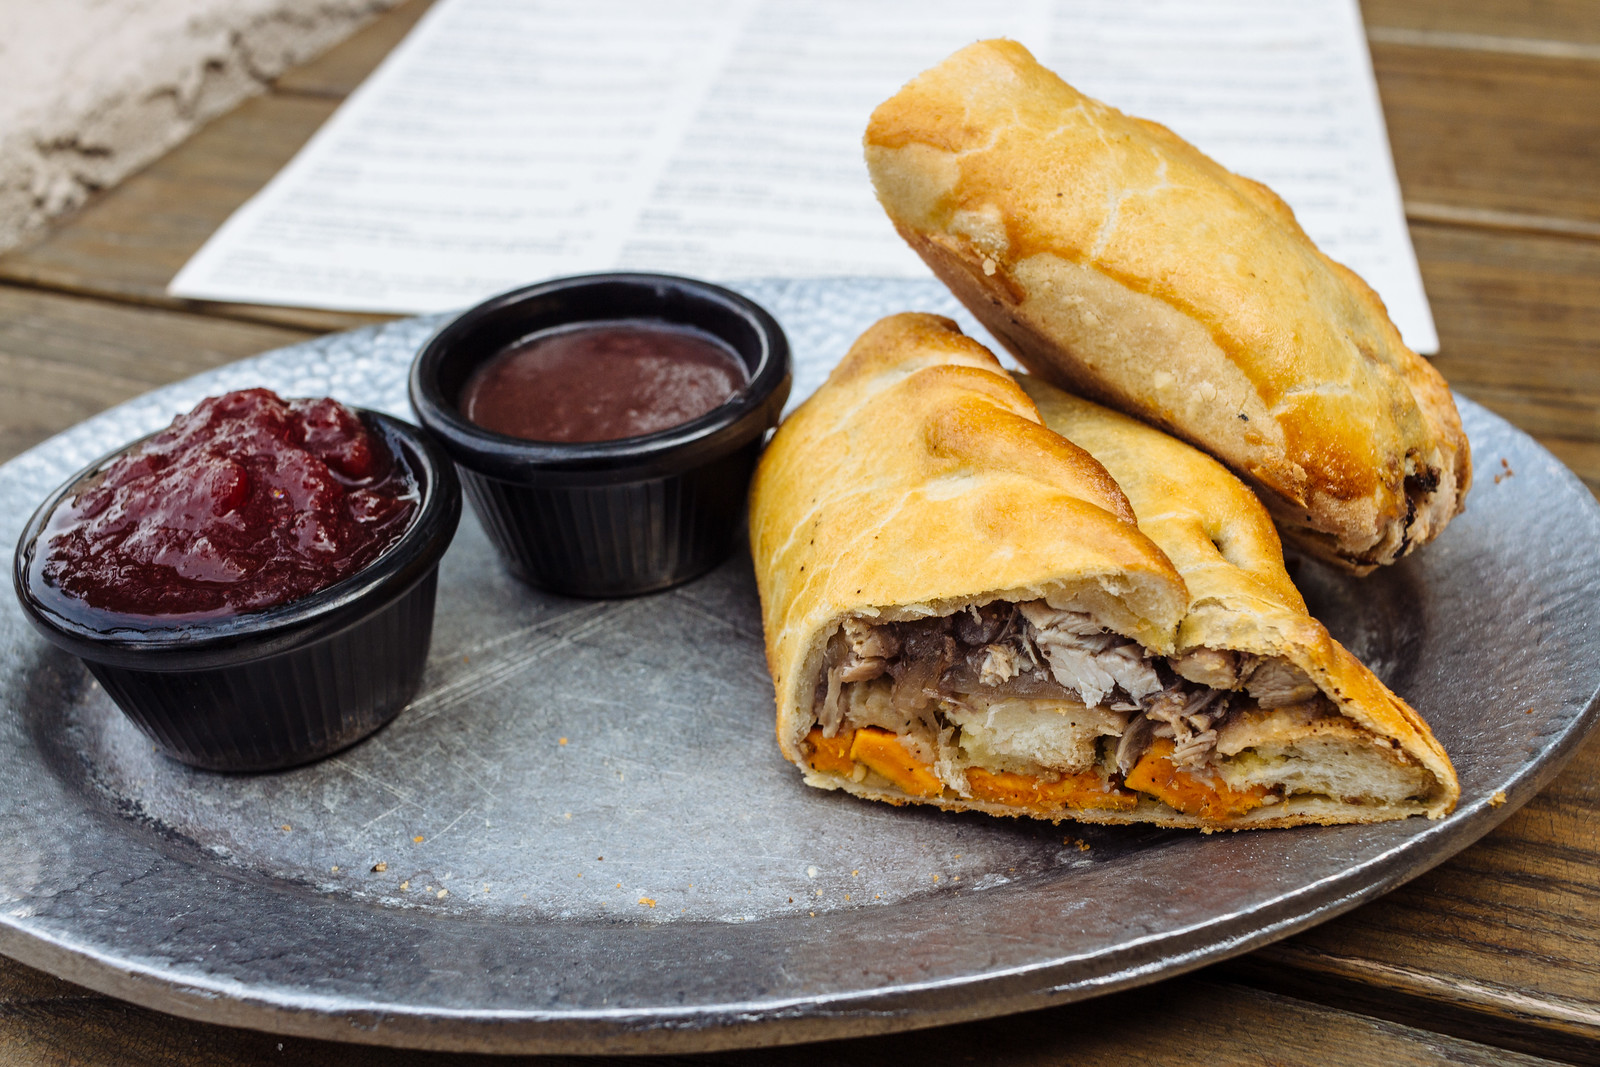 A meat pie of turkey and sweet potatoes sliced in half with containers of cranberry sauce and gravy